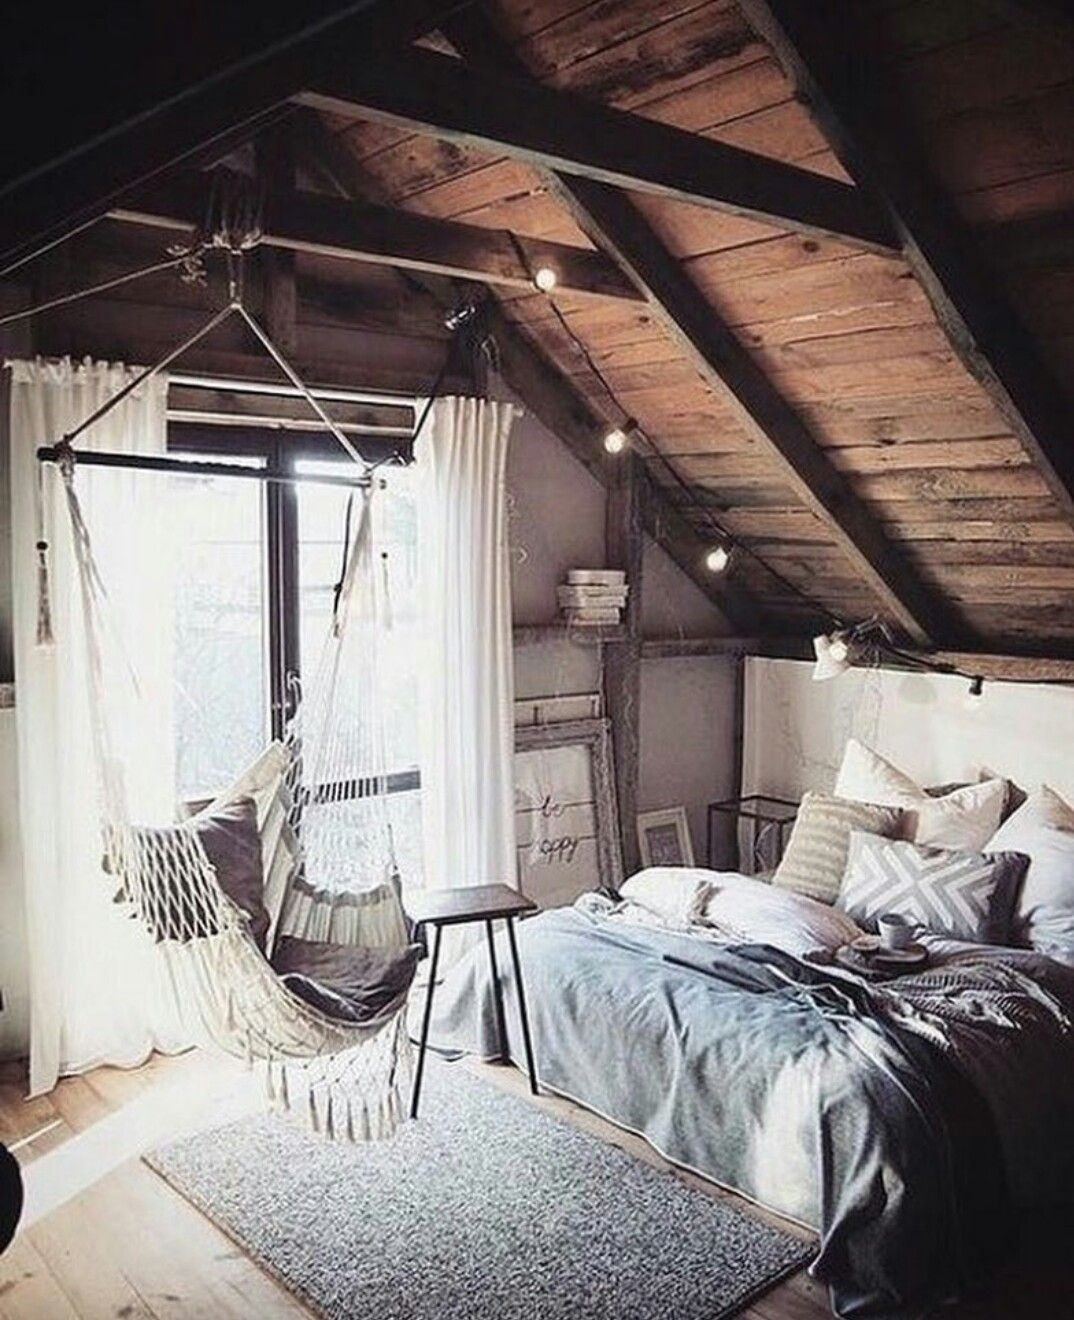 Pin by nàvy paul on future house pinterest bedrooms room and